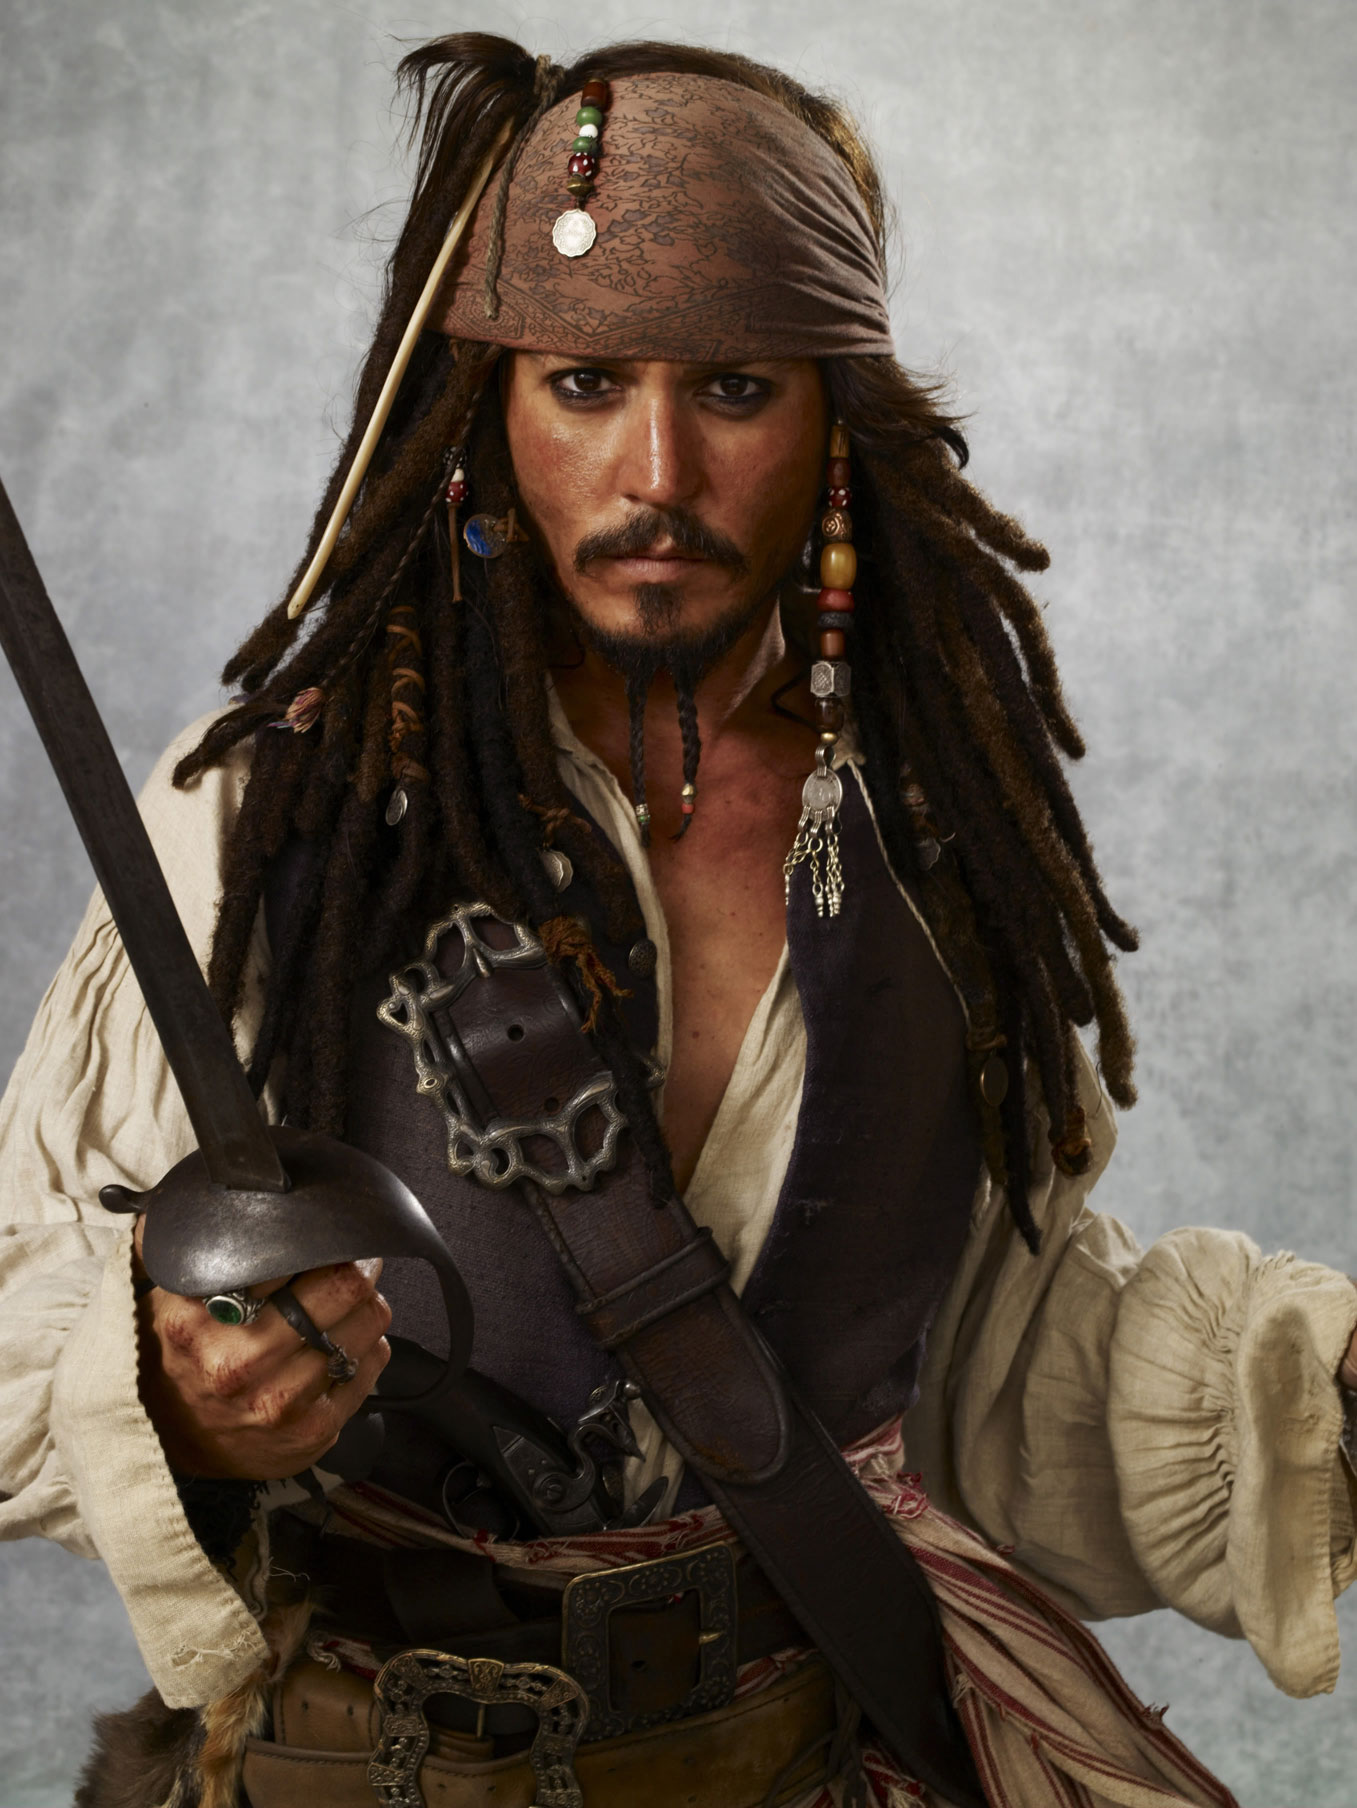 MegaTopStars Johnny Depp Biography Filmography News